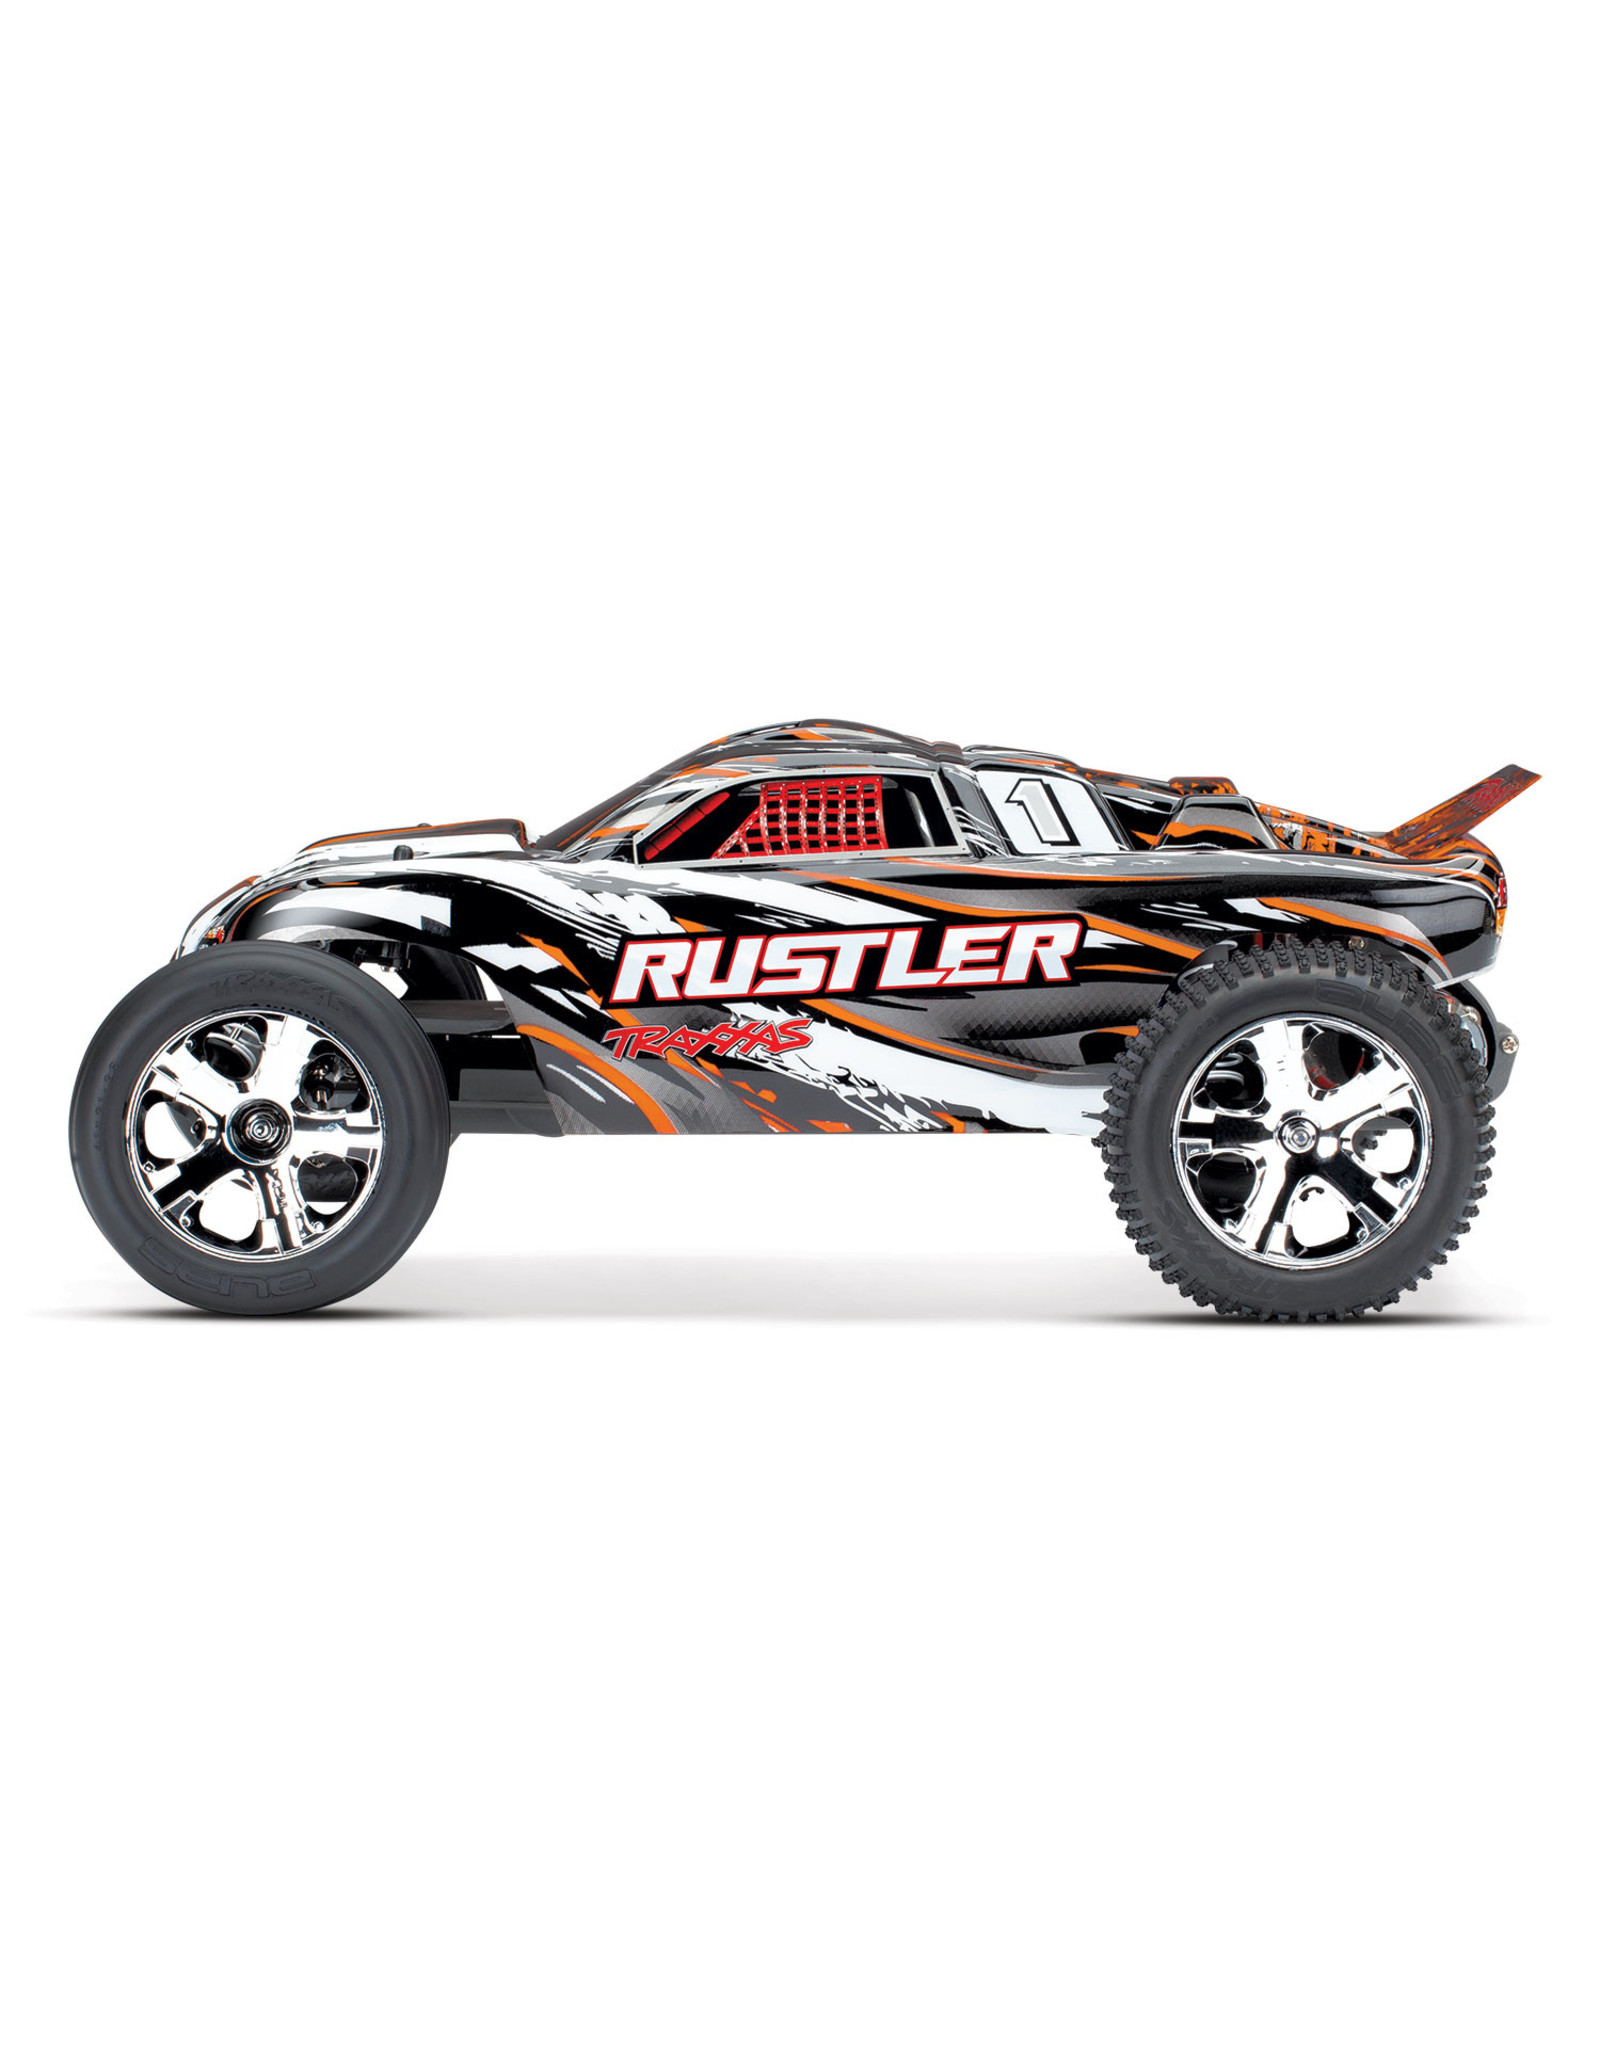 Traxxas 1/10 Rustler 2WD Brushed (ORANGE): Includes Battery with DC Charger